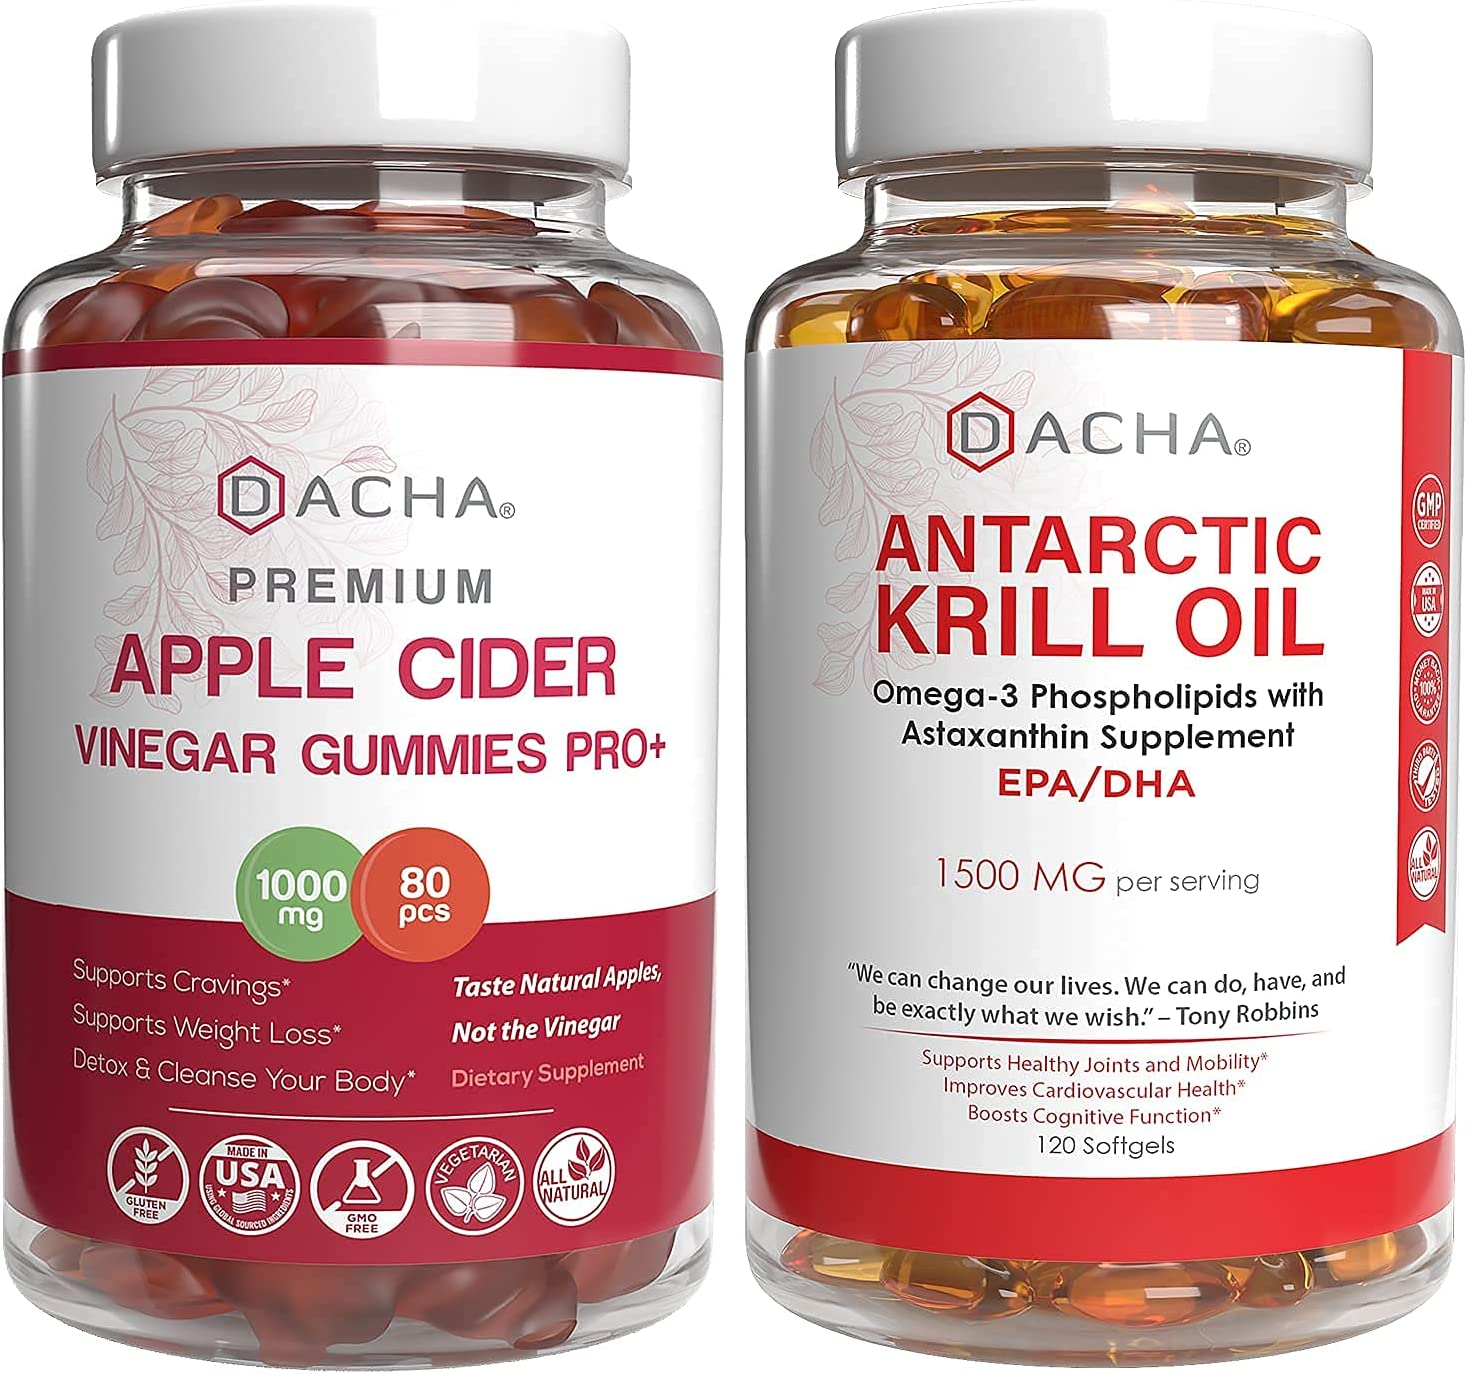 2x Advanced Immunity Detox Bundle - Apple Cider Vinegar & Krill Oil, Natural Ultra Absorption Supplements, ACV With Mother, Astaxanthin Standard EPA DHA, For Heart Health, Joint Relief, Immune Support